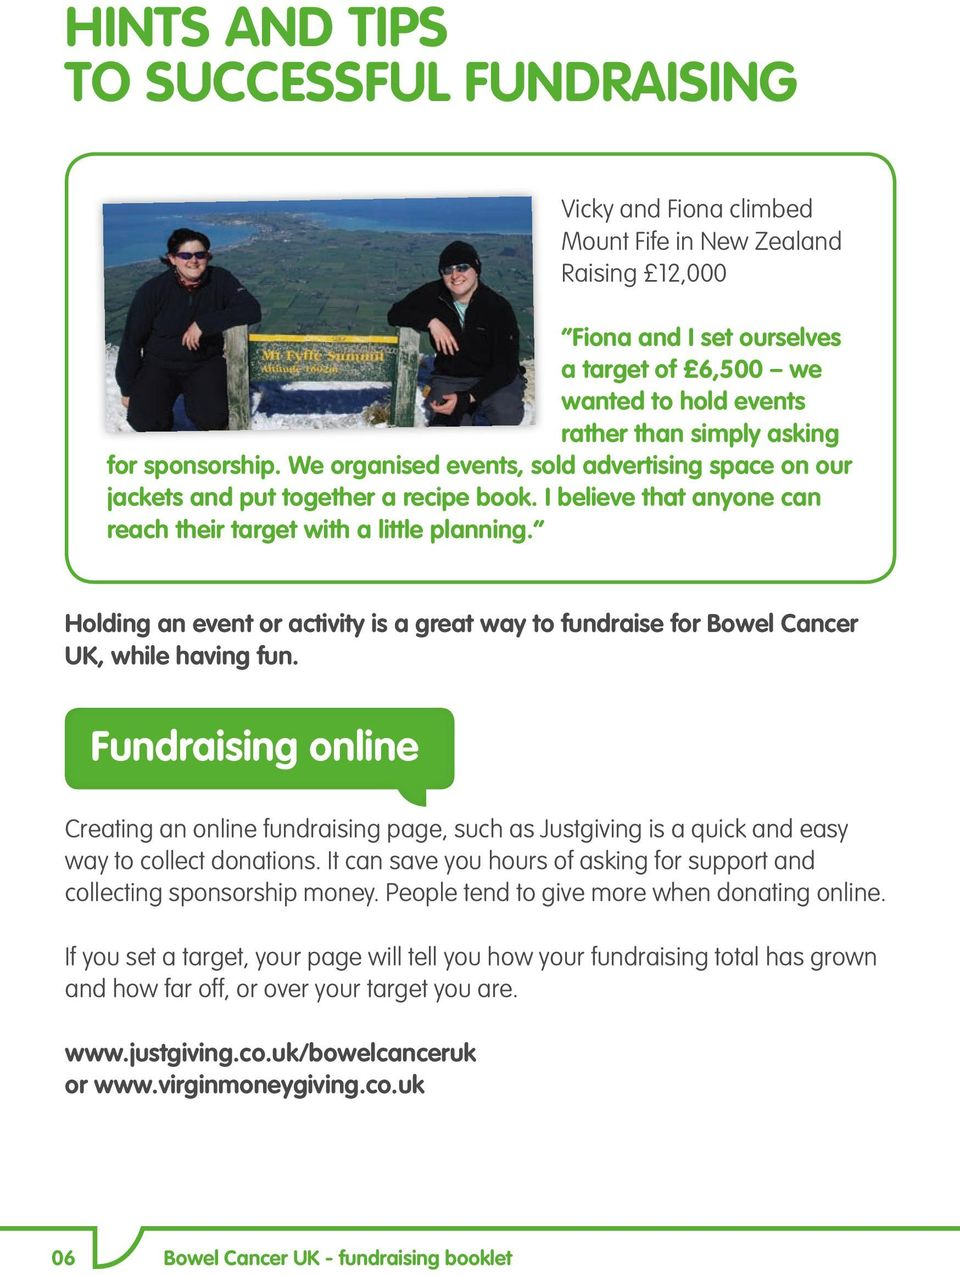 Holding an event or activity is a great way to fundraise for Bowel Cancer UK, while having fun.